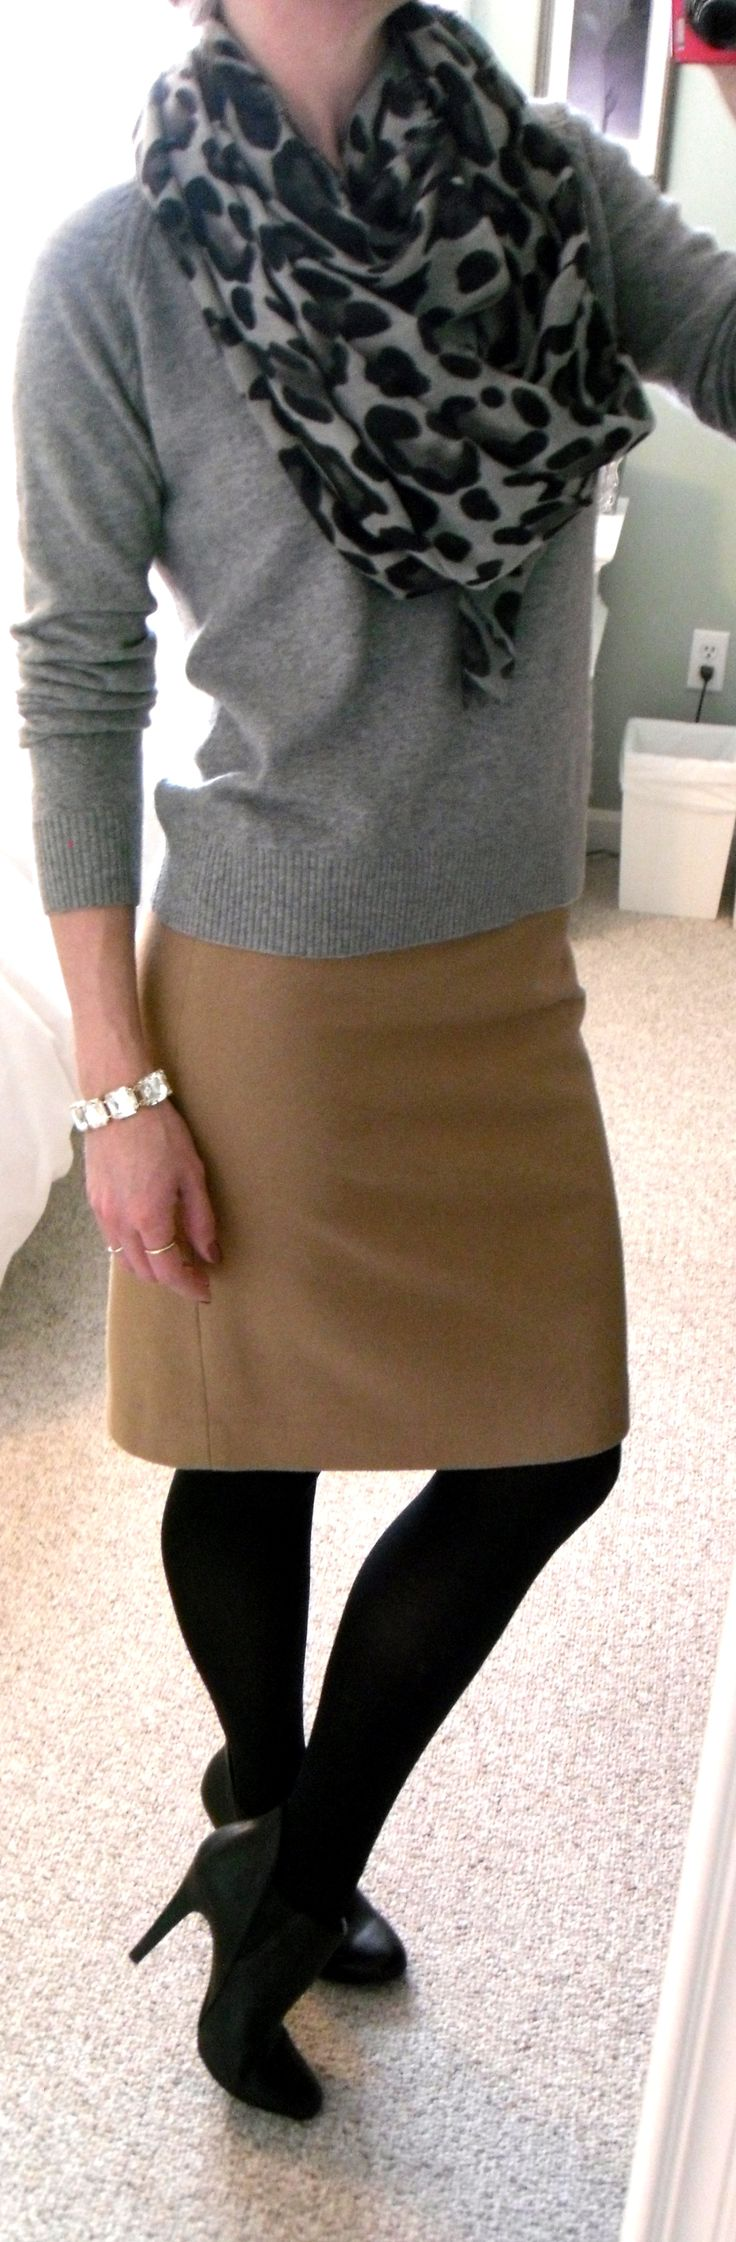 Leopard scarf (tied like an infinity scarf), L.L. Bean gray cashmere sweater, J. Crew wool pencil skirt in camel, black tights and booties